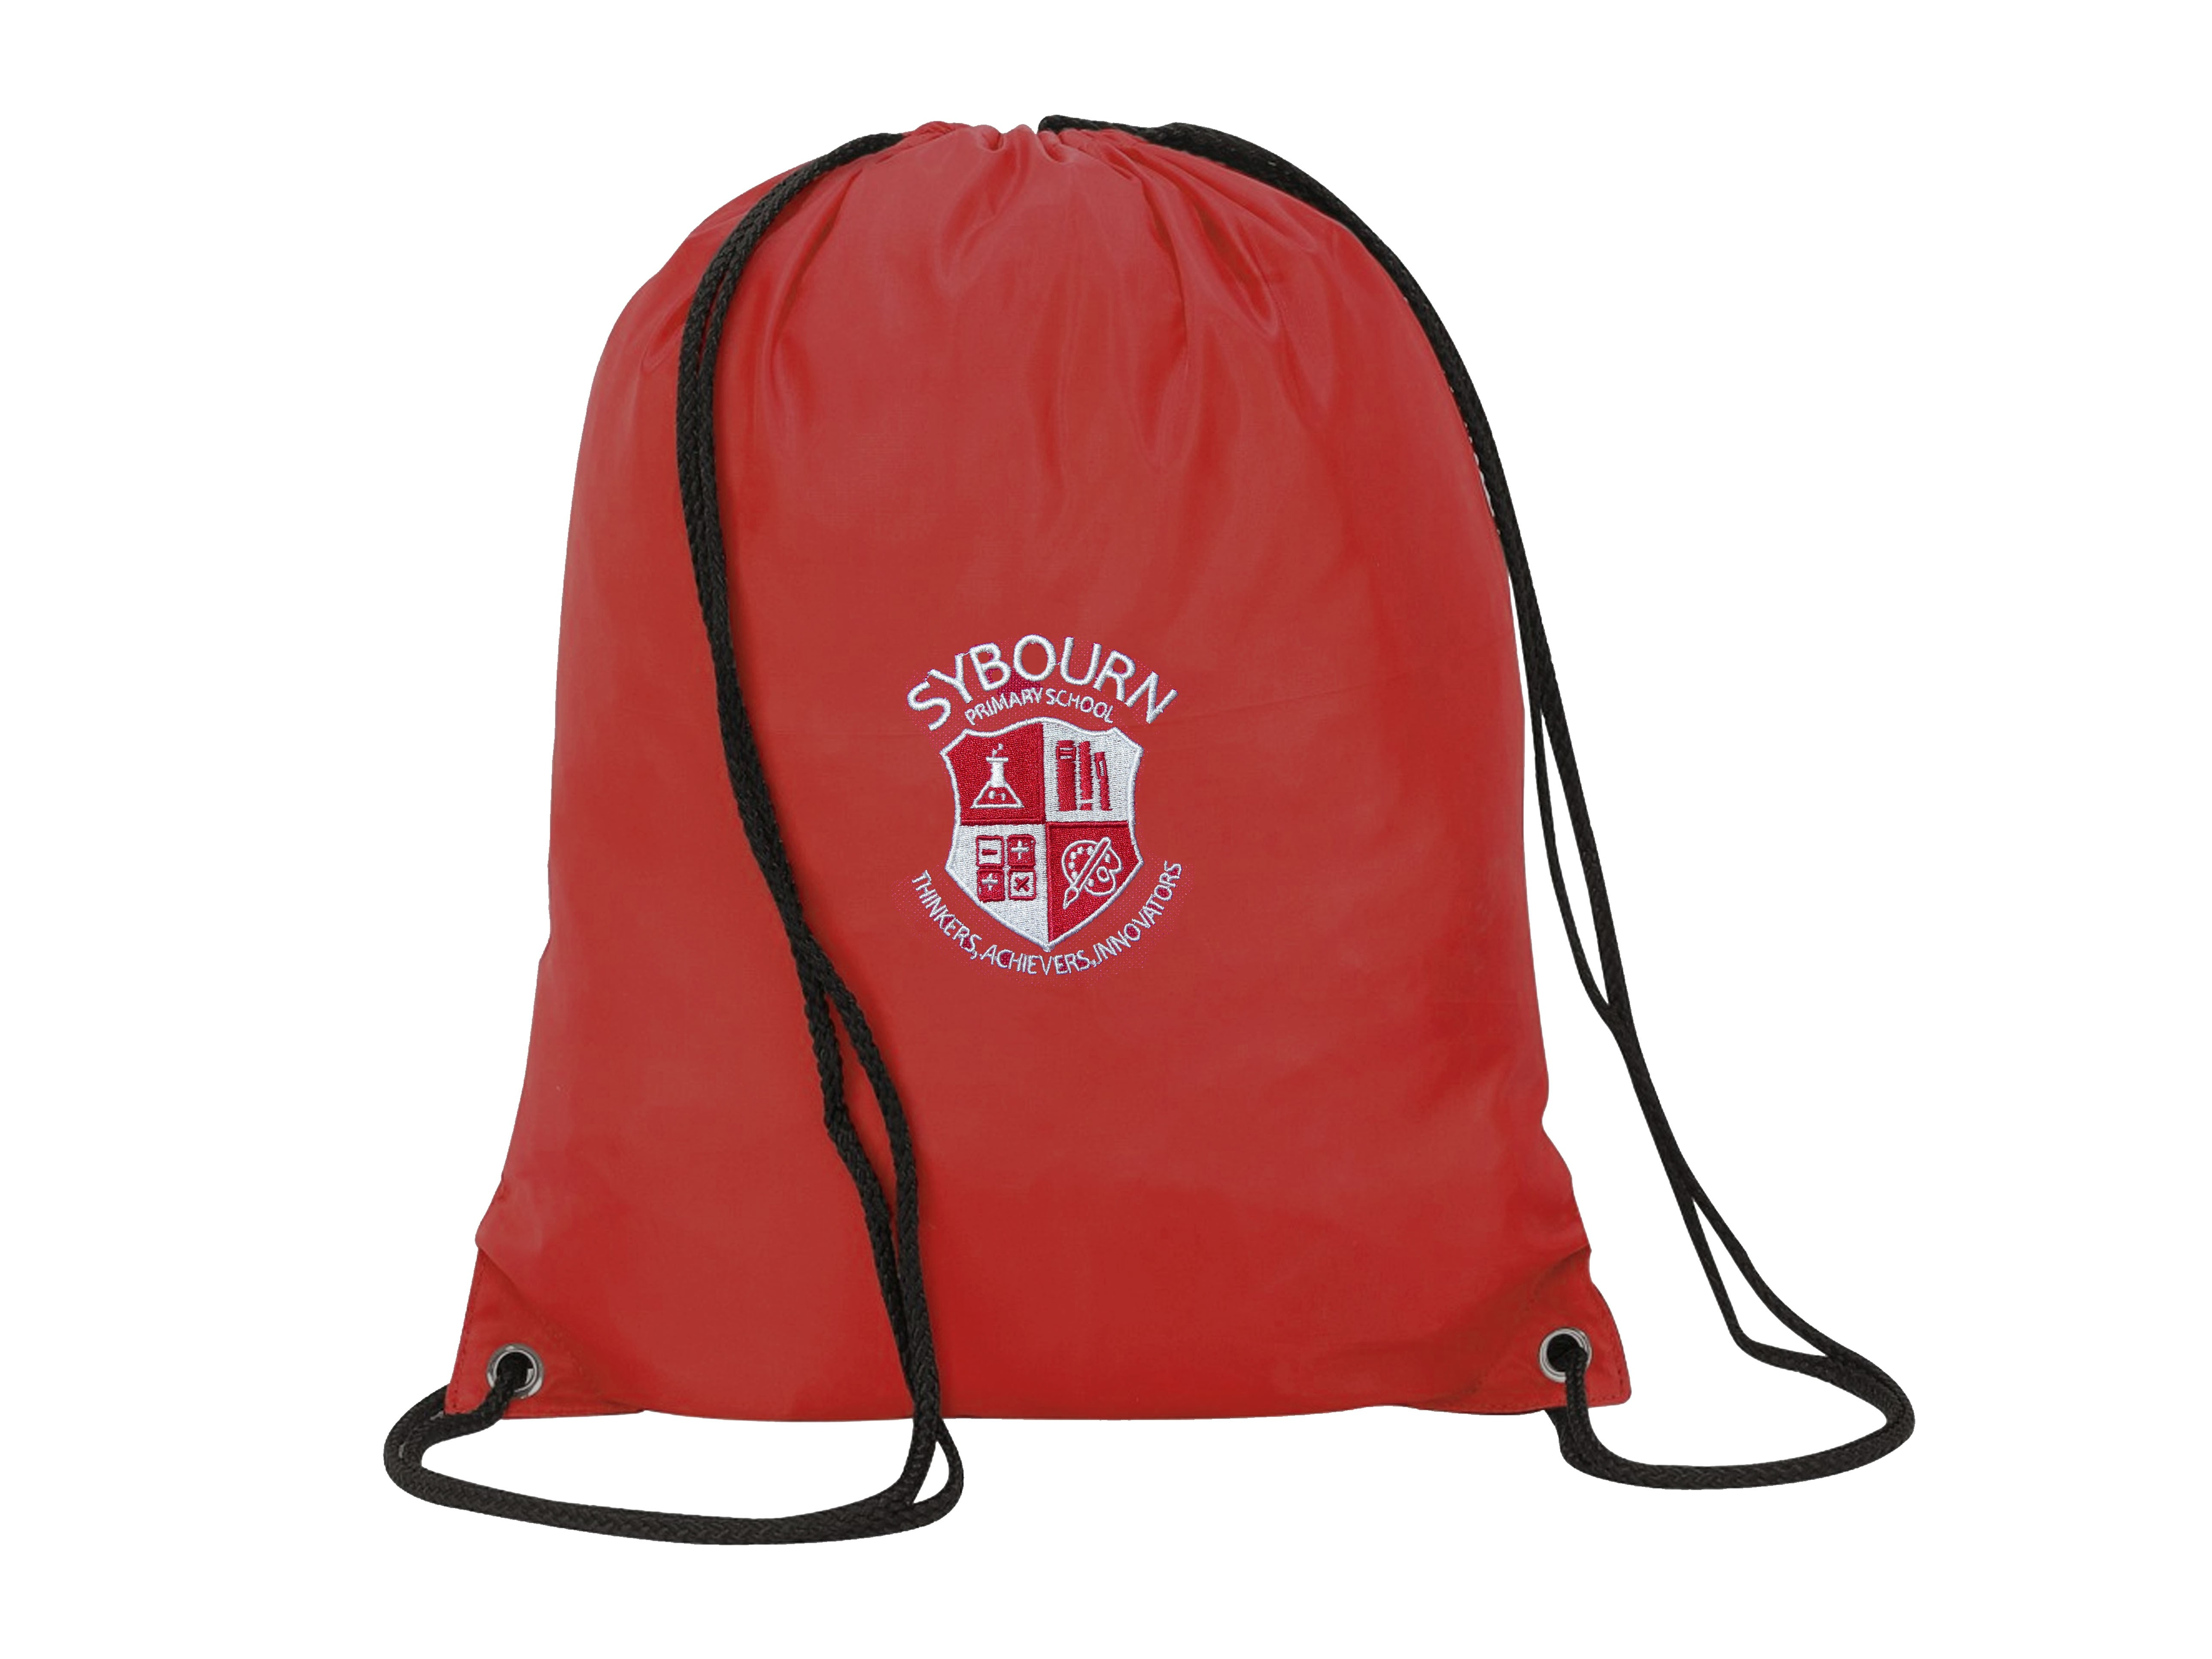 Sybourn P.E Bag